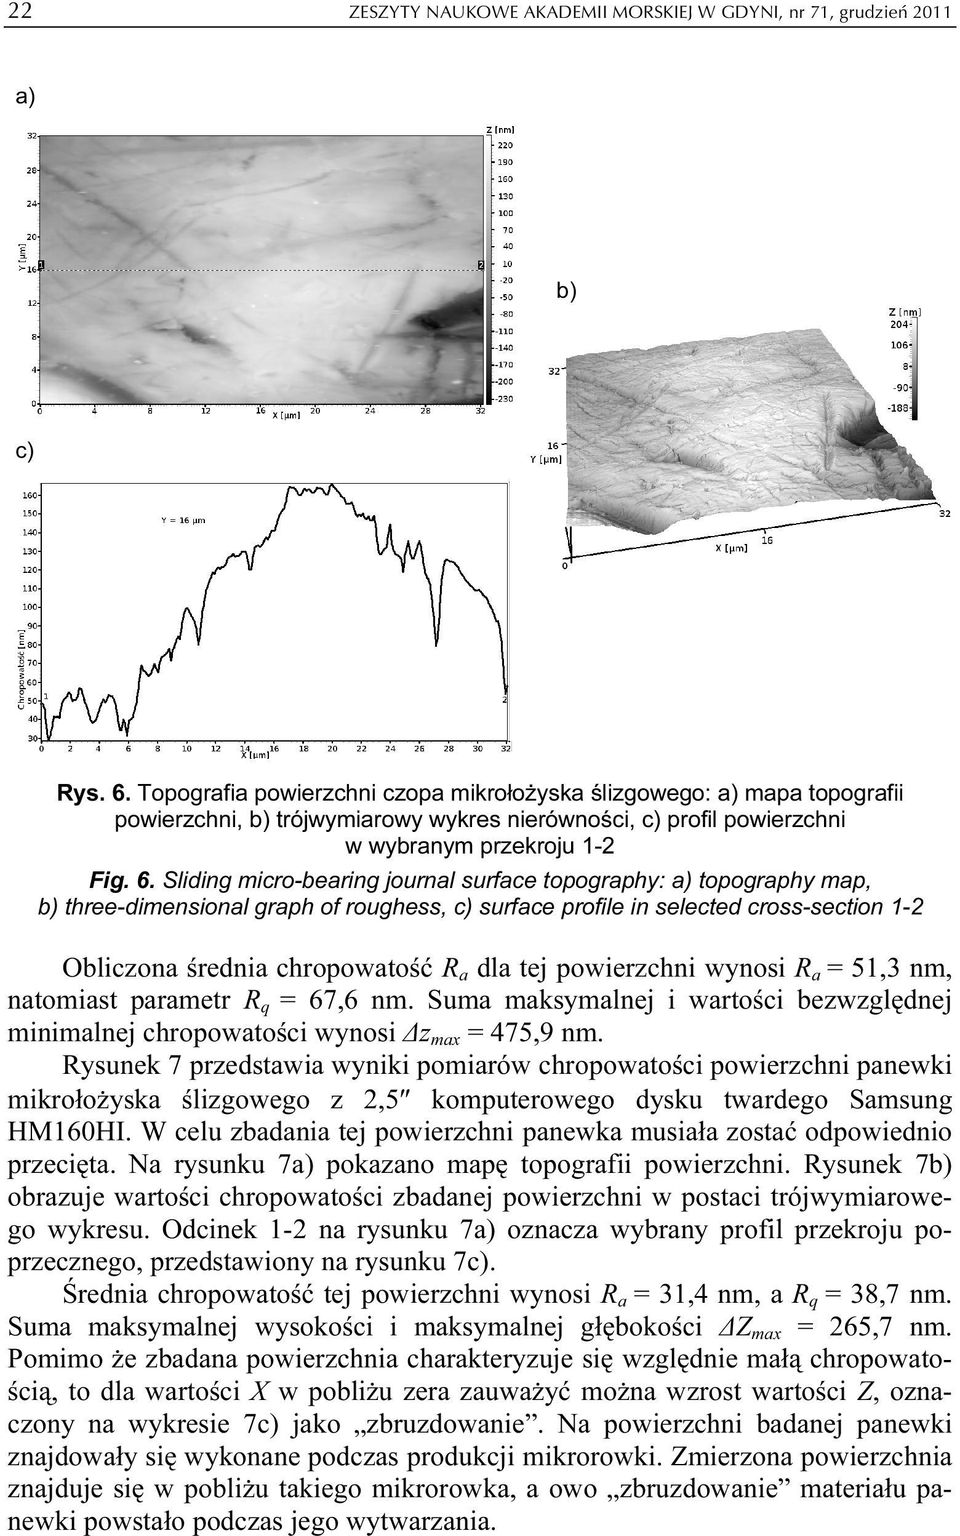 Sliding micro-bearing journal surface topography: a) topography map, b) three-dimensional graph of roughess, c) surface profile in selected cross-section 1-2 Obliczona średnia chropowatość R a dla